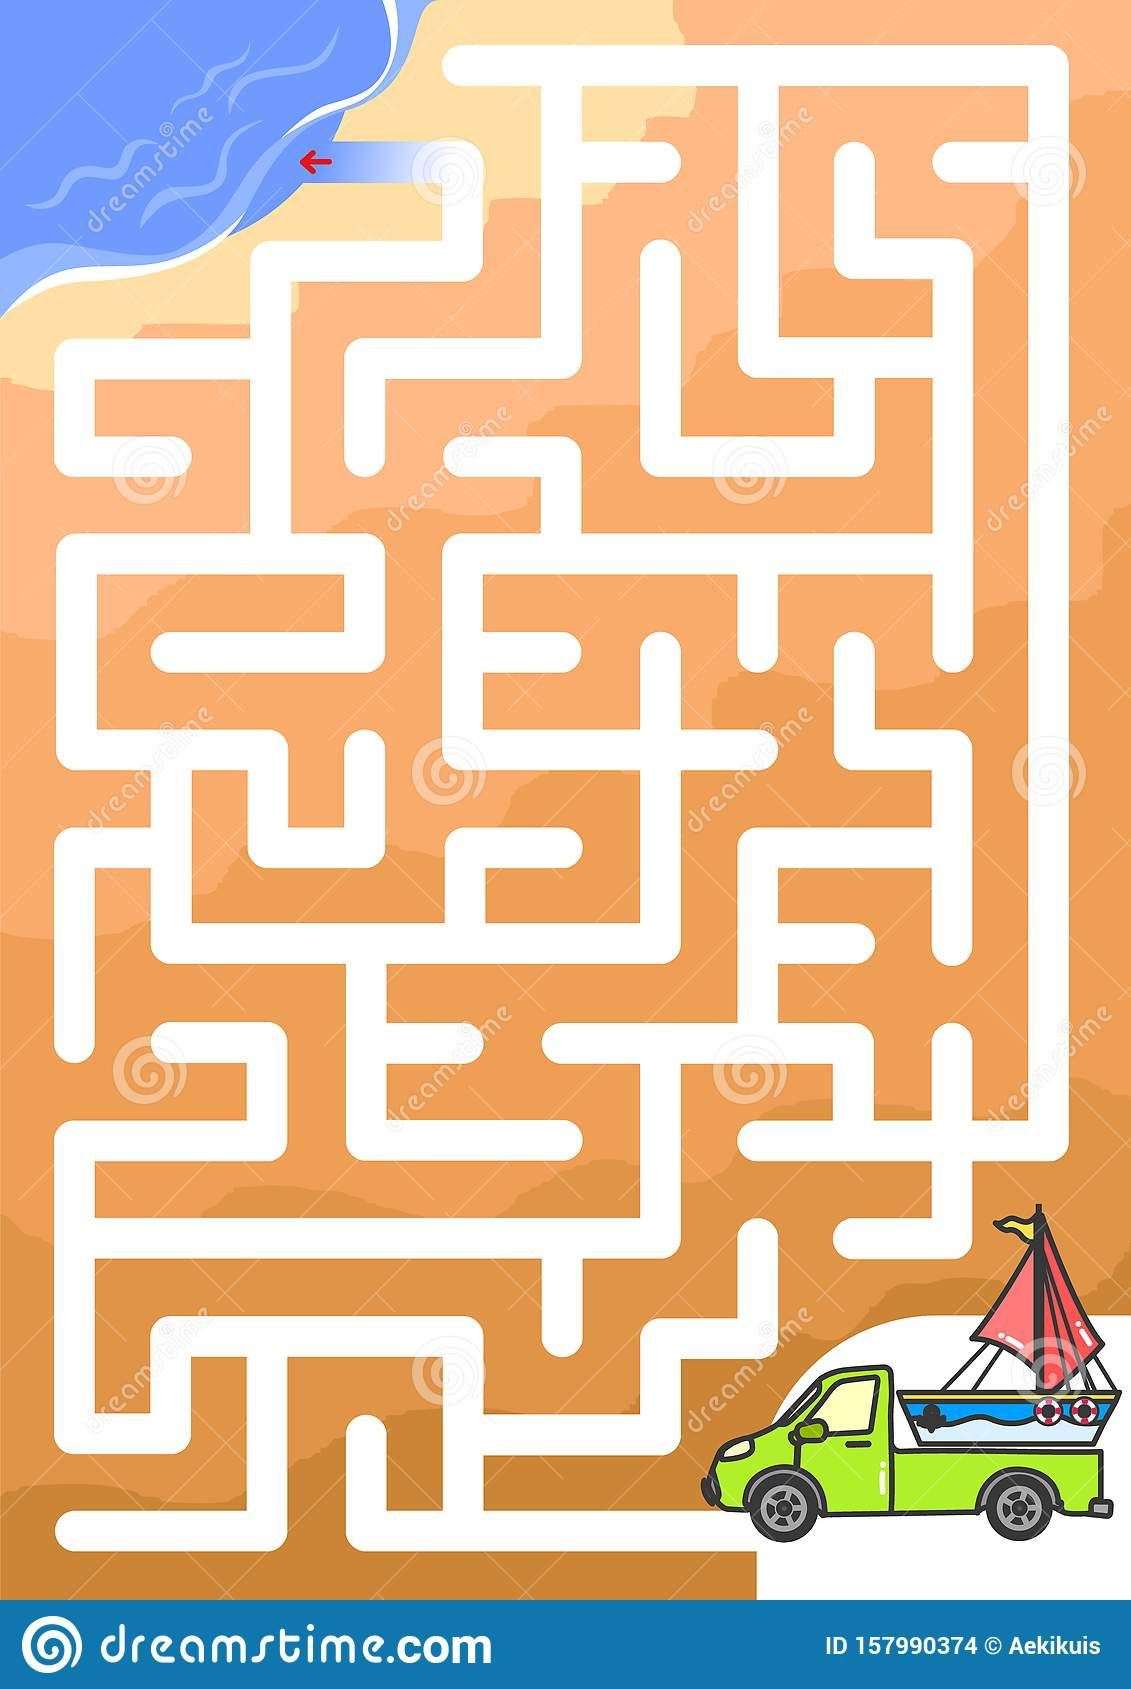 Worksheet For Education Maze Game Help The Car To Find